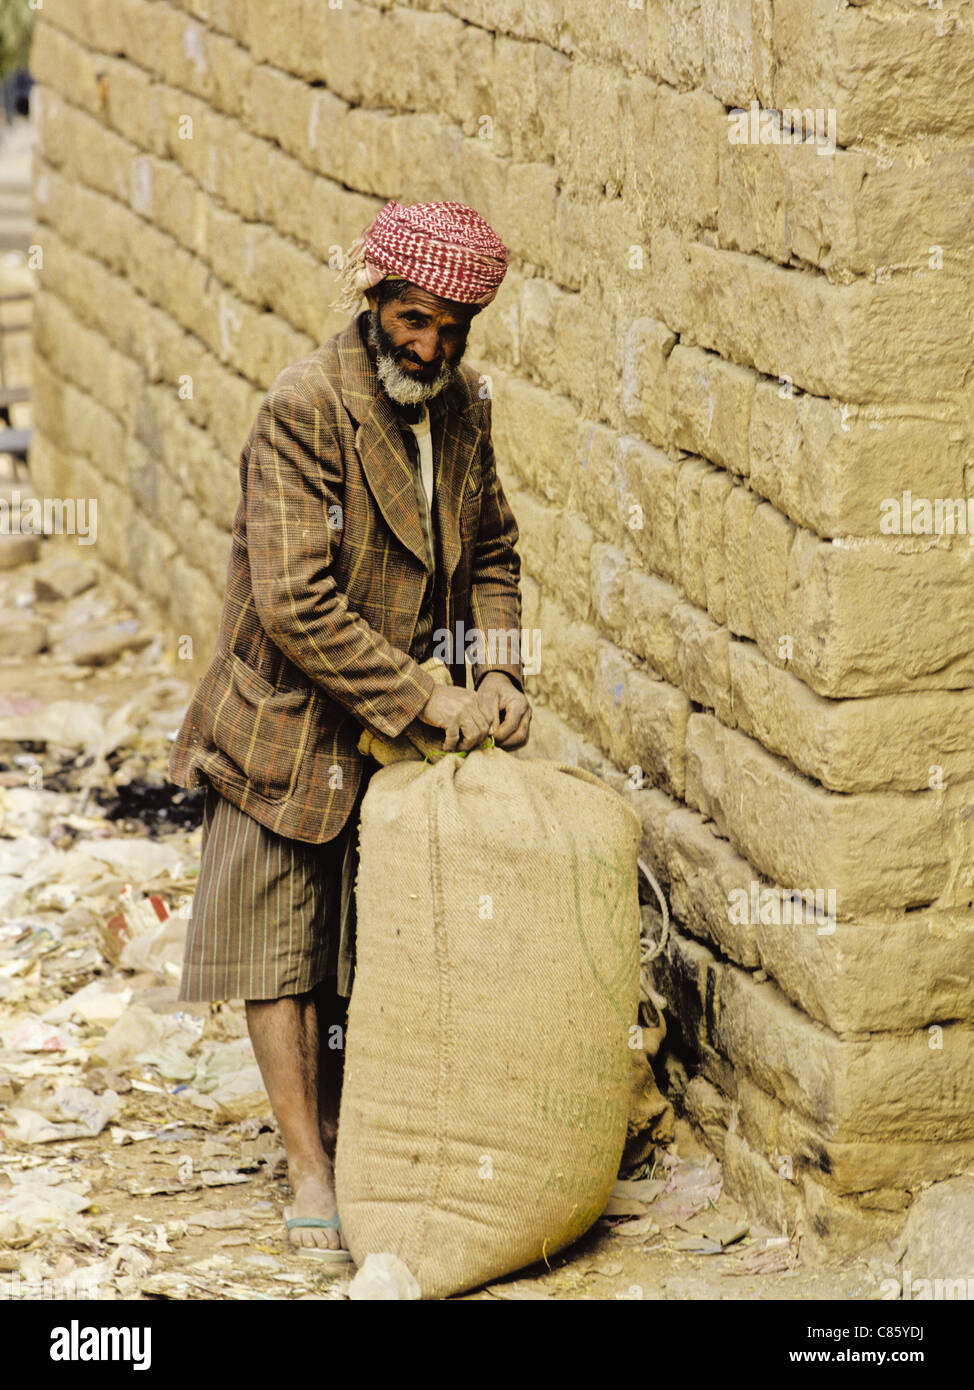 Full-length portrait of a Yemini man wearing a red and white checked keffiyeh and holding a burlap bag, Thula, Yemen - Stock Image